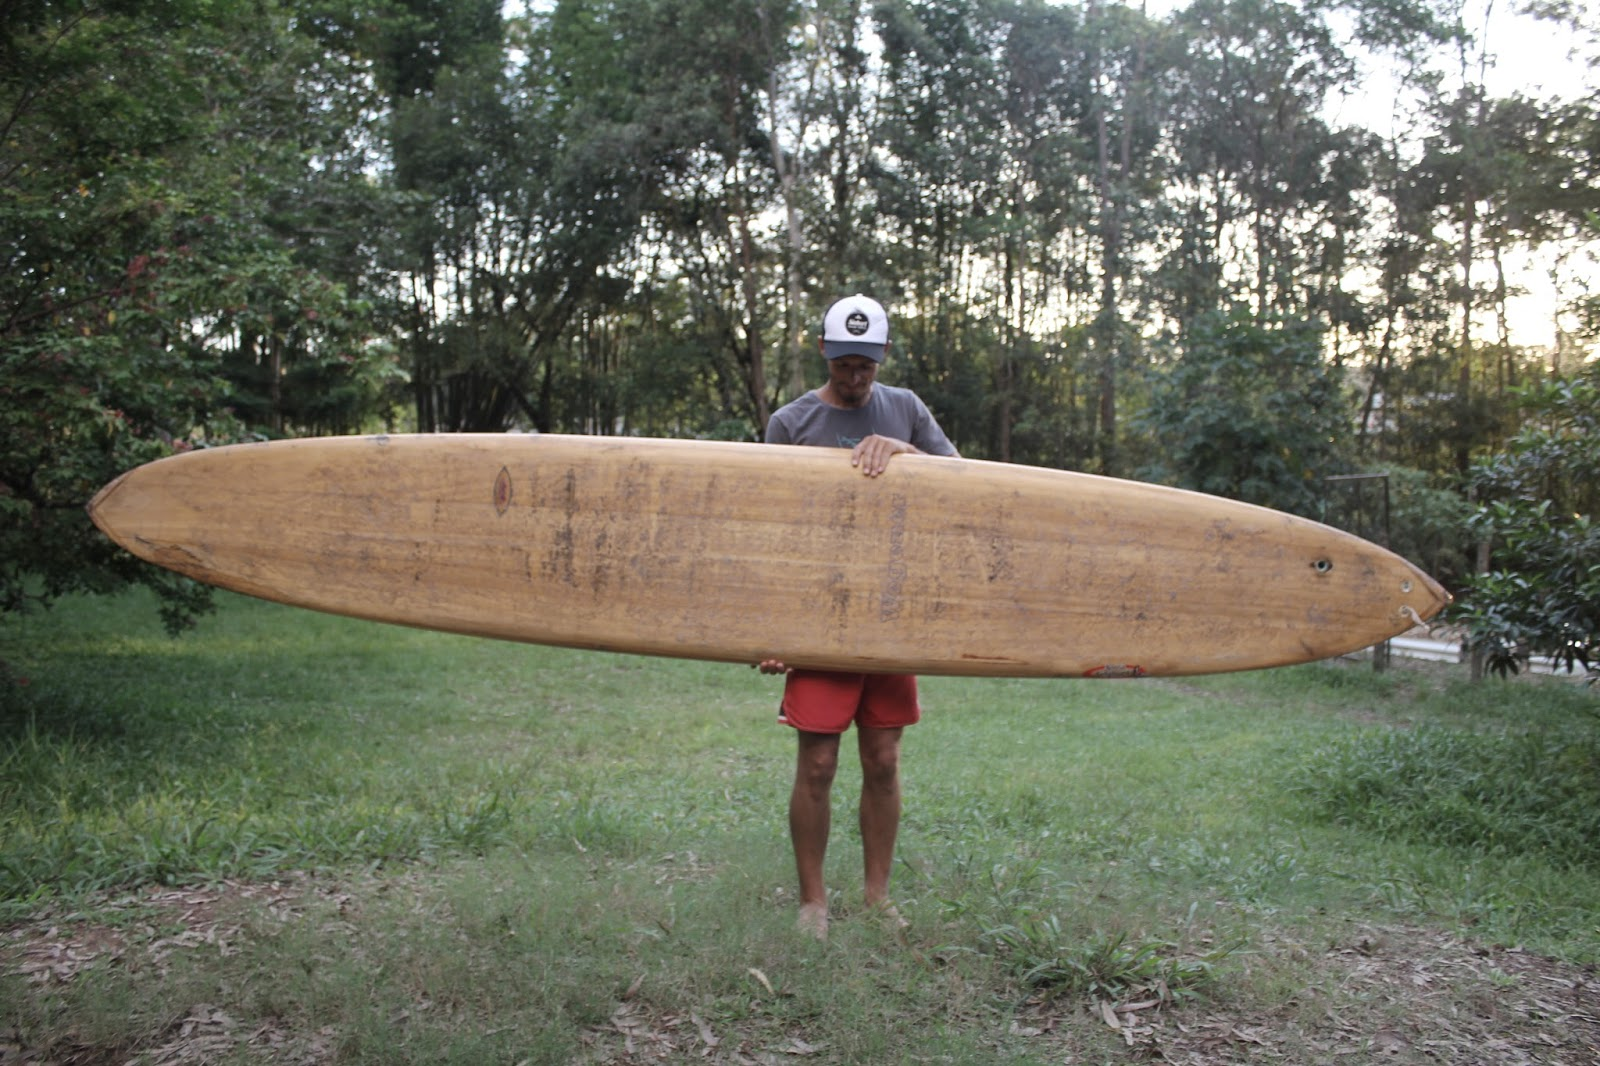 16-03-2016-australia-siebert-surfboards-12